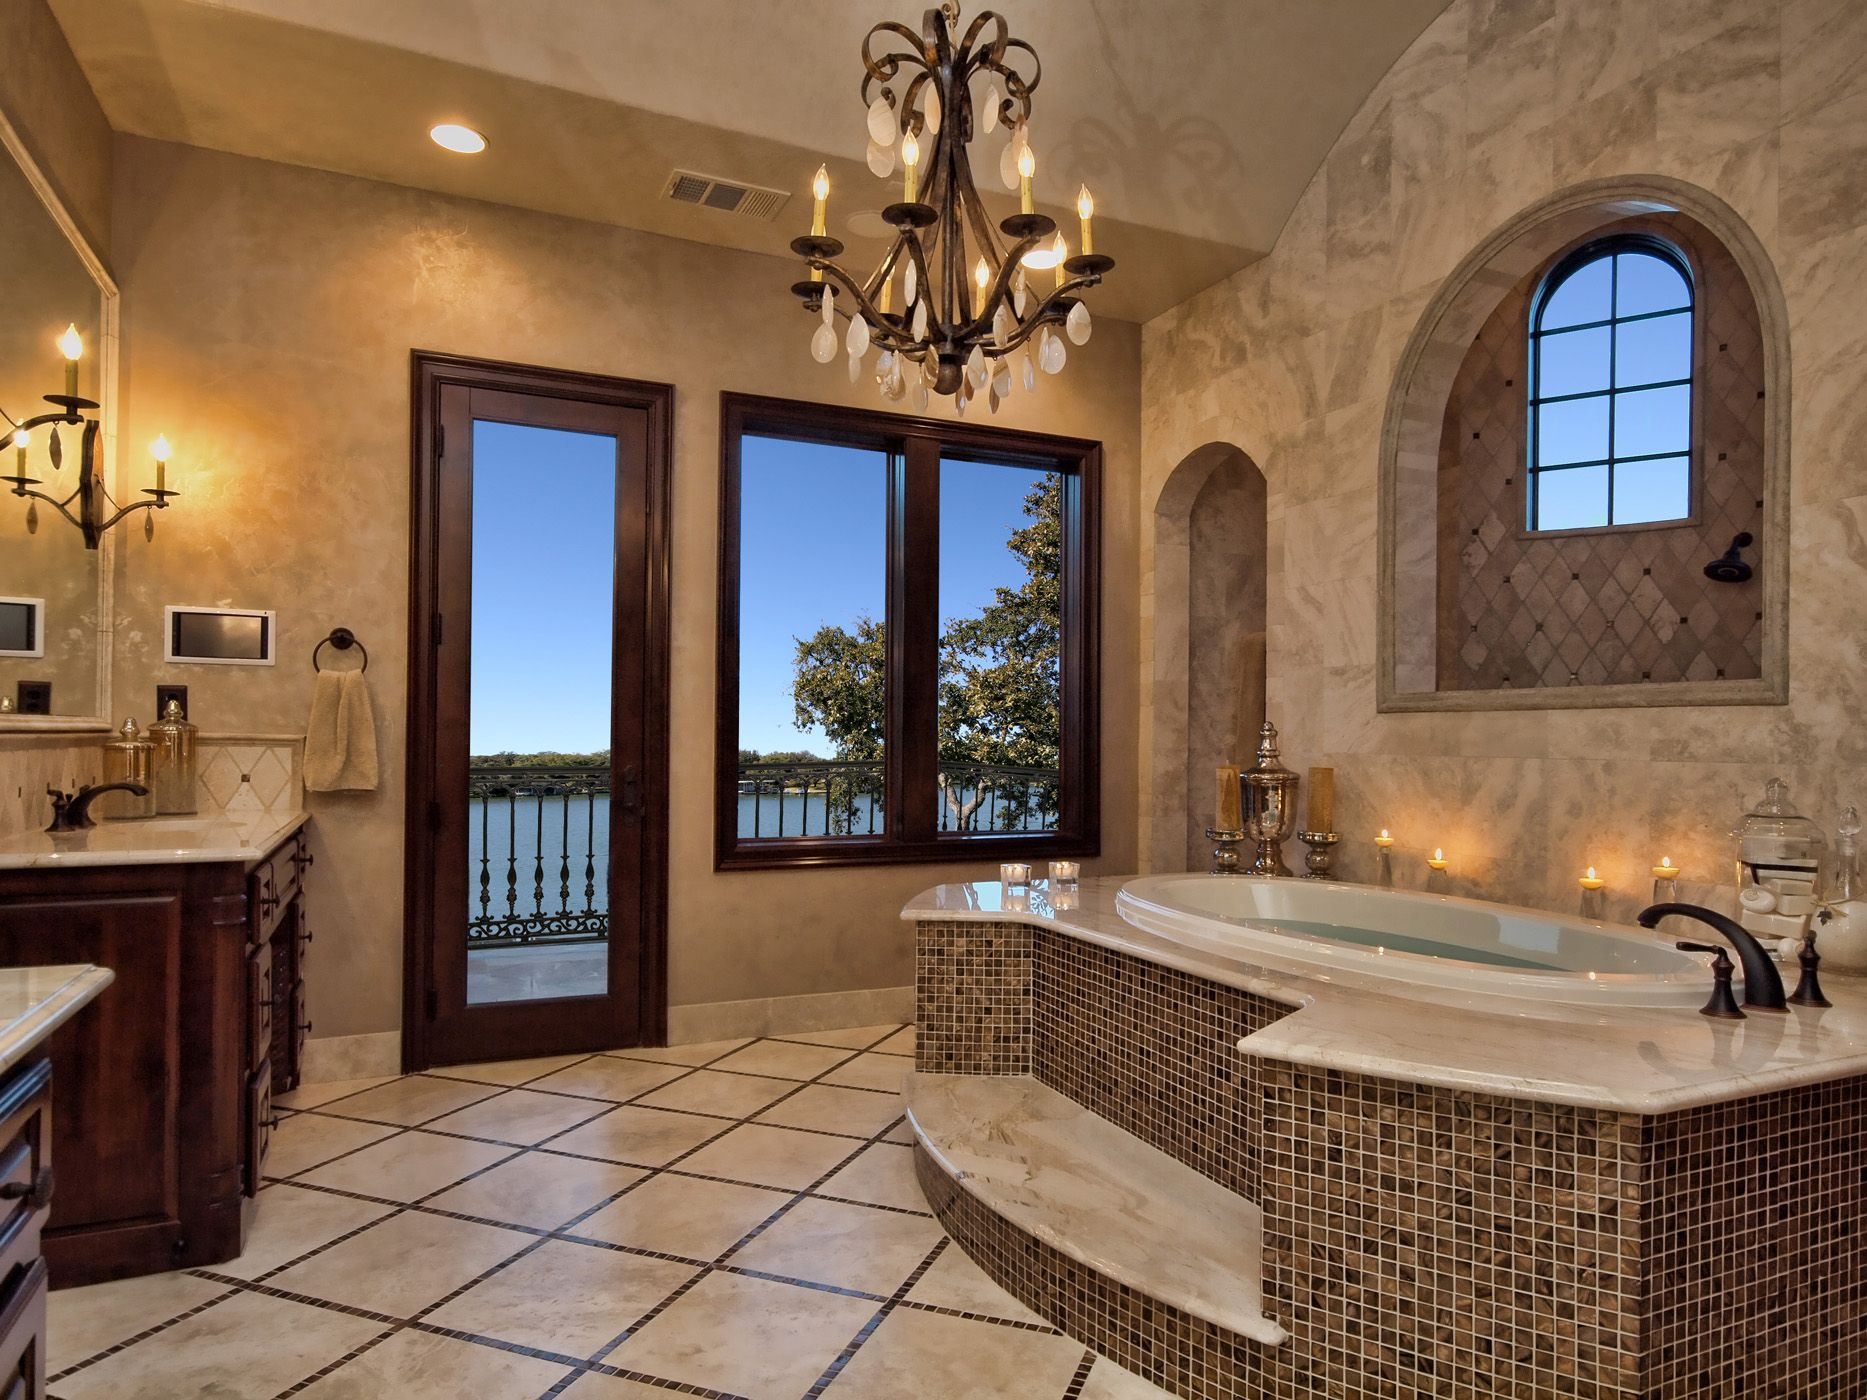 21 luxury mediterranean bathroom design ideas - Master Bathroom